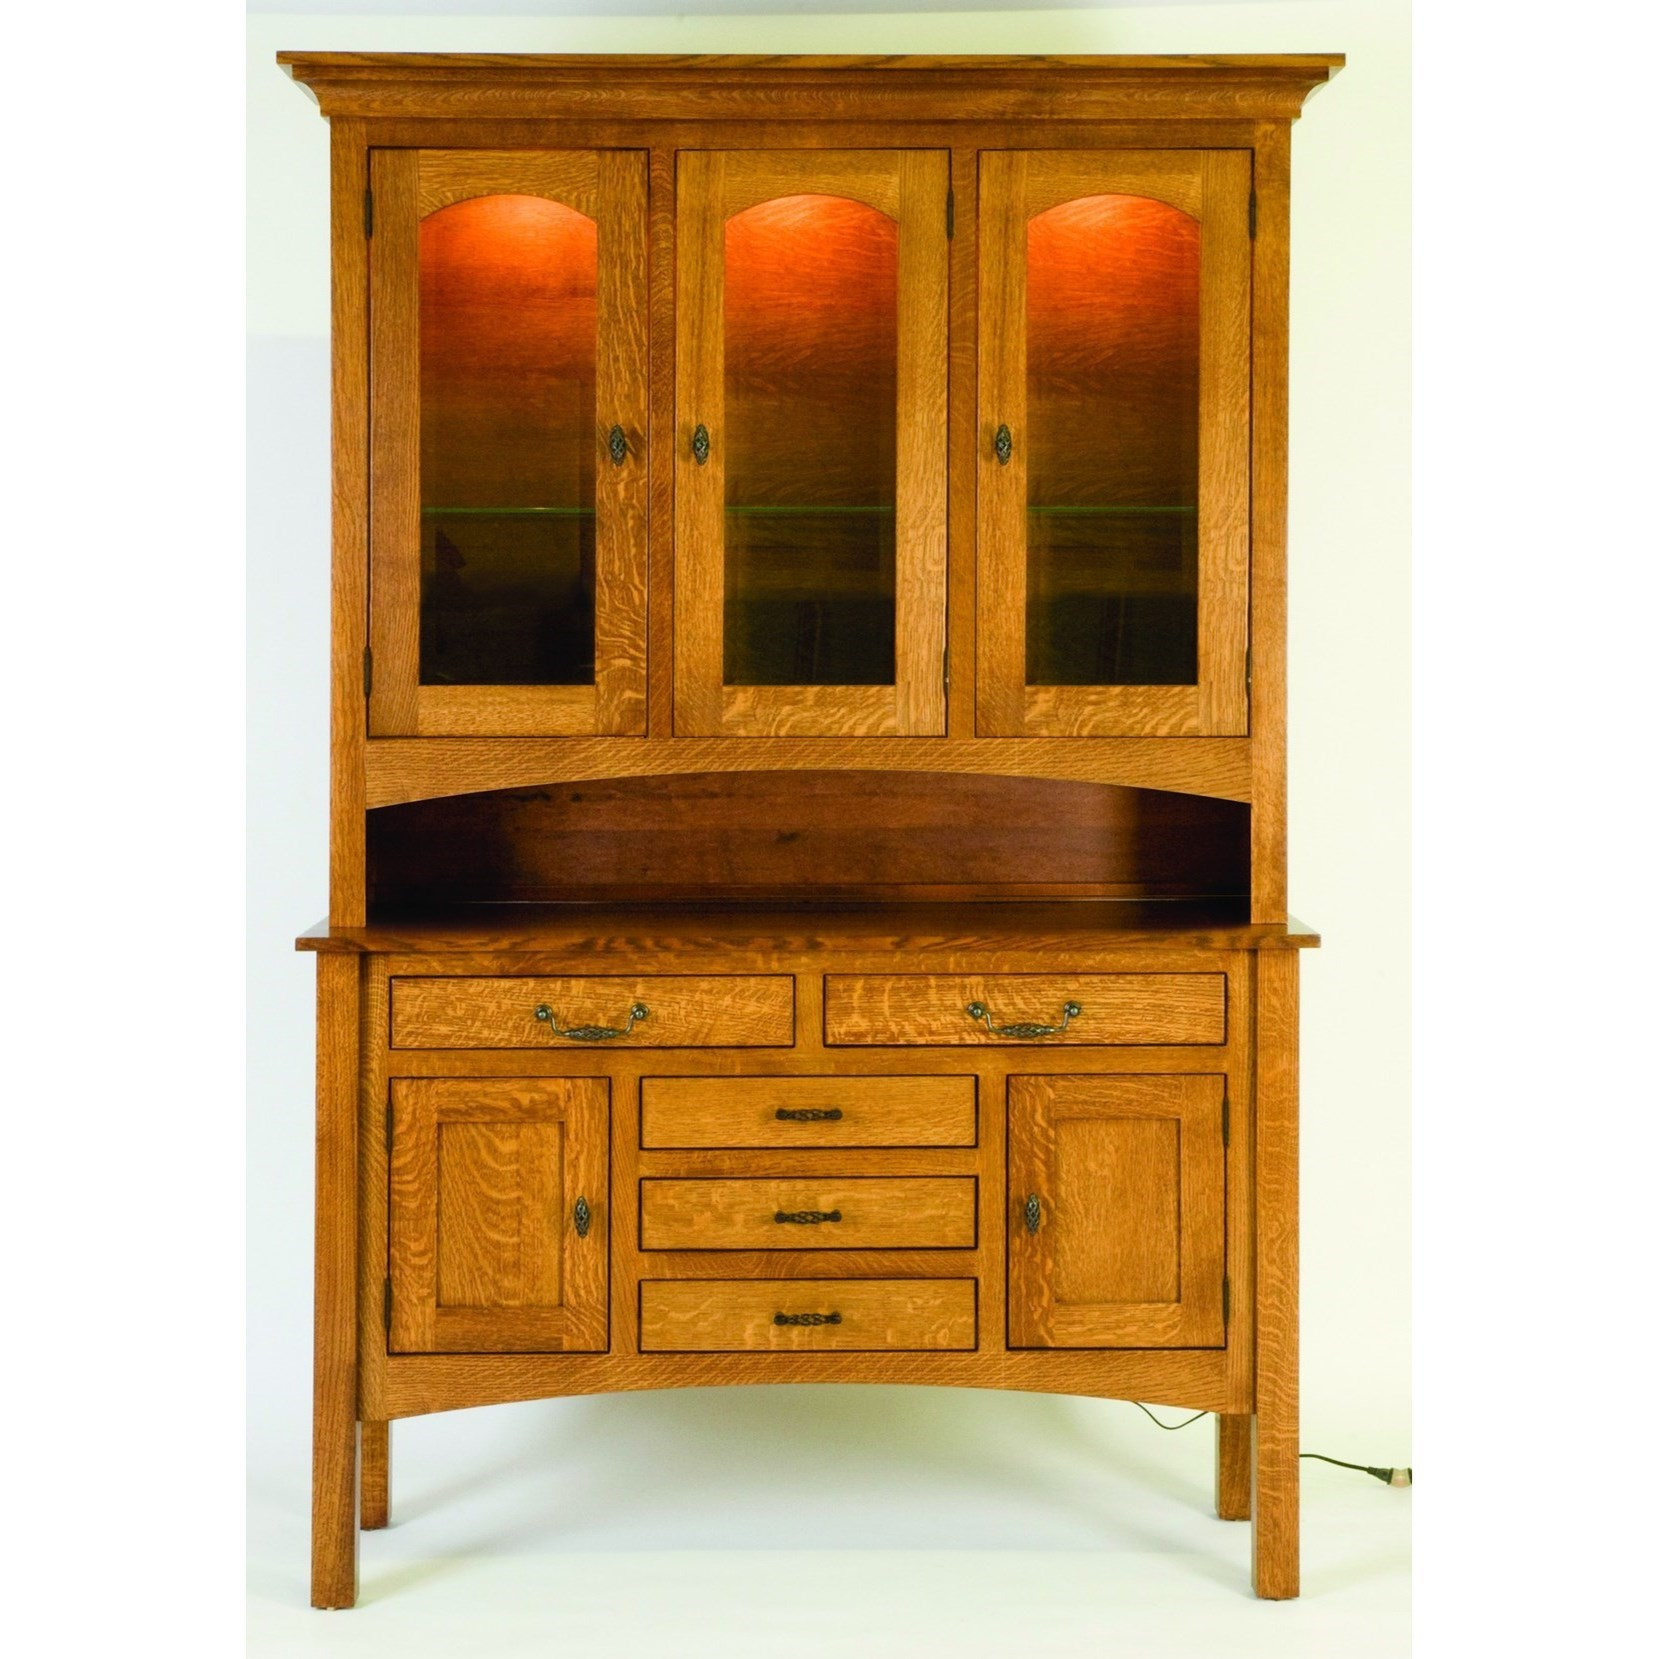 Highland Customizable Dining Buffet and Hutch by Palettes by Winesburg at Novello Home Furnishings